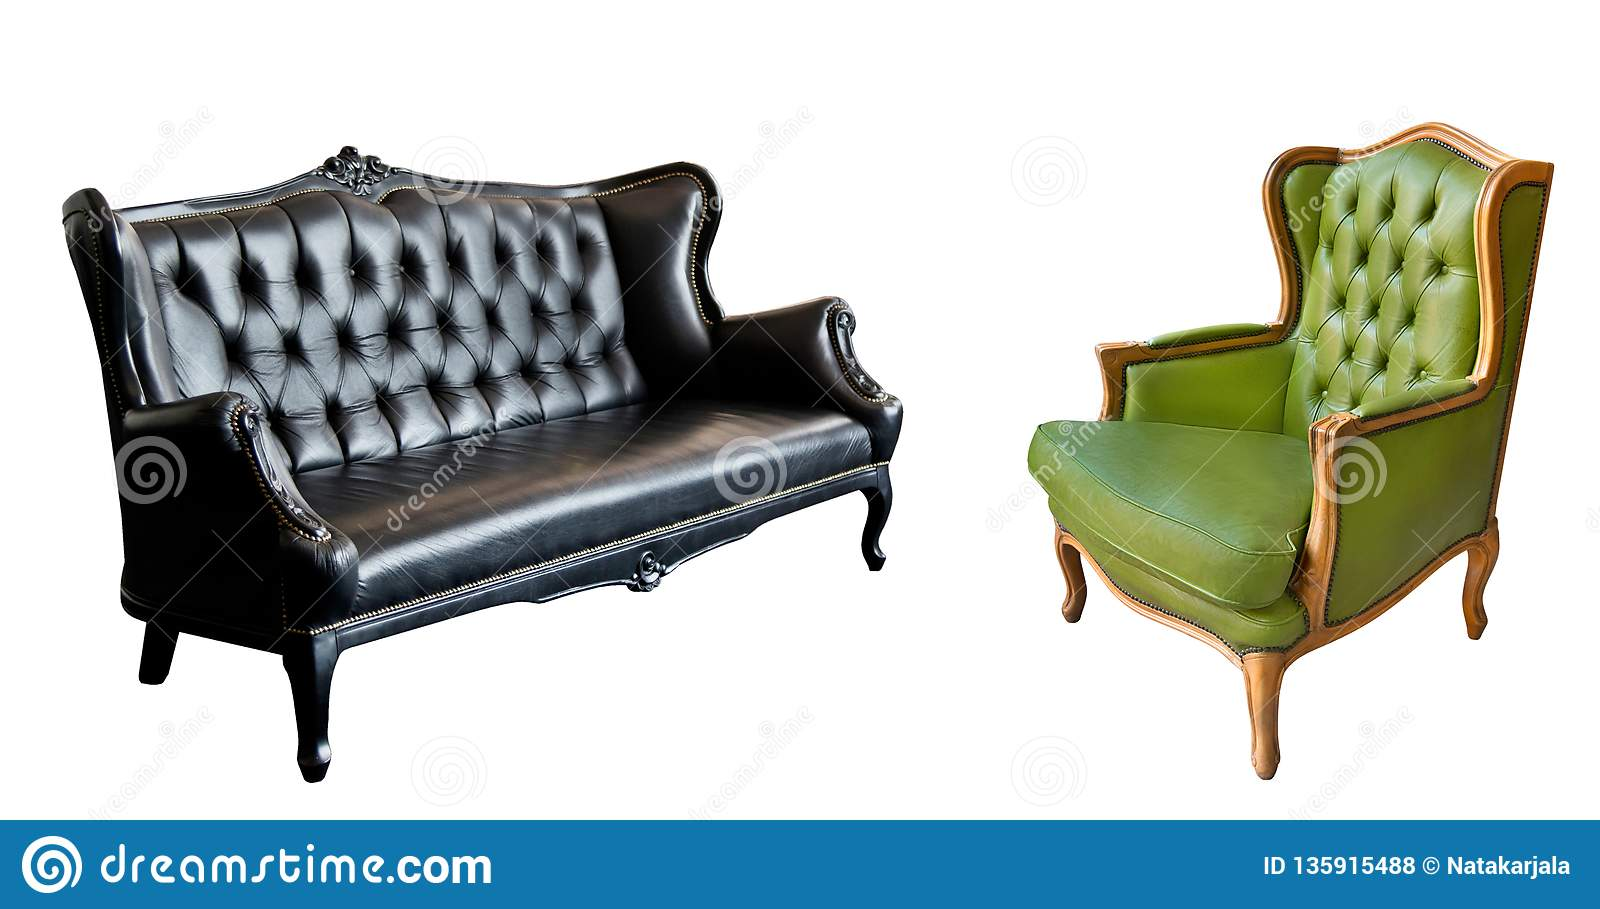 Admirable Gorgeous Vintage Green Leather Armchair And Black Leather Machost Co Dining Chair Design Ideas Machostcouk